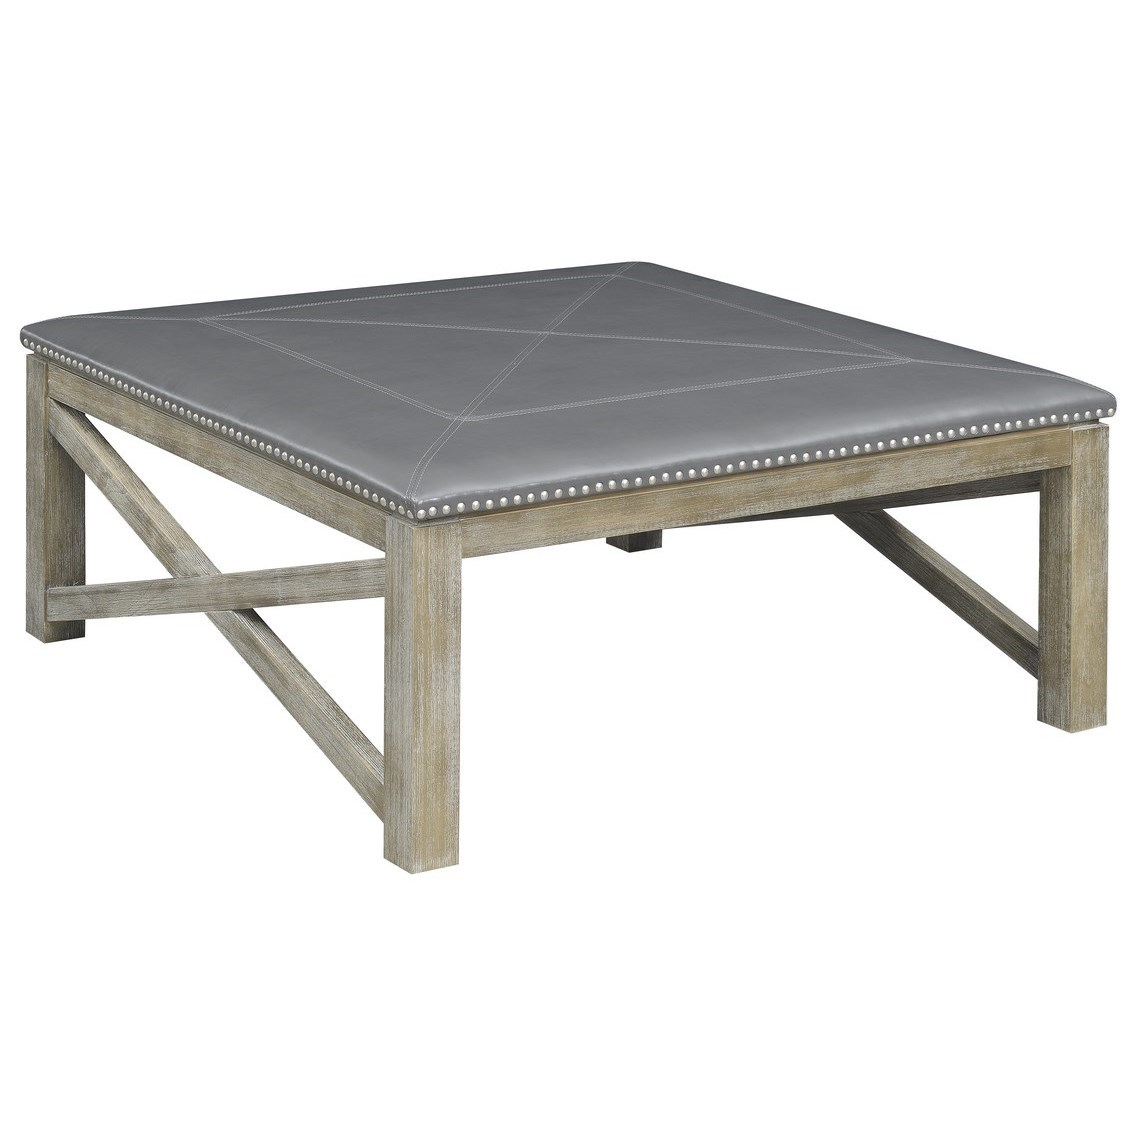 Laney Upholstered Coffee Table by Emerald at Northeast Factory Direct